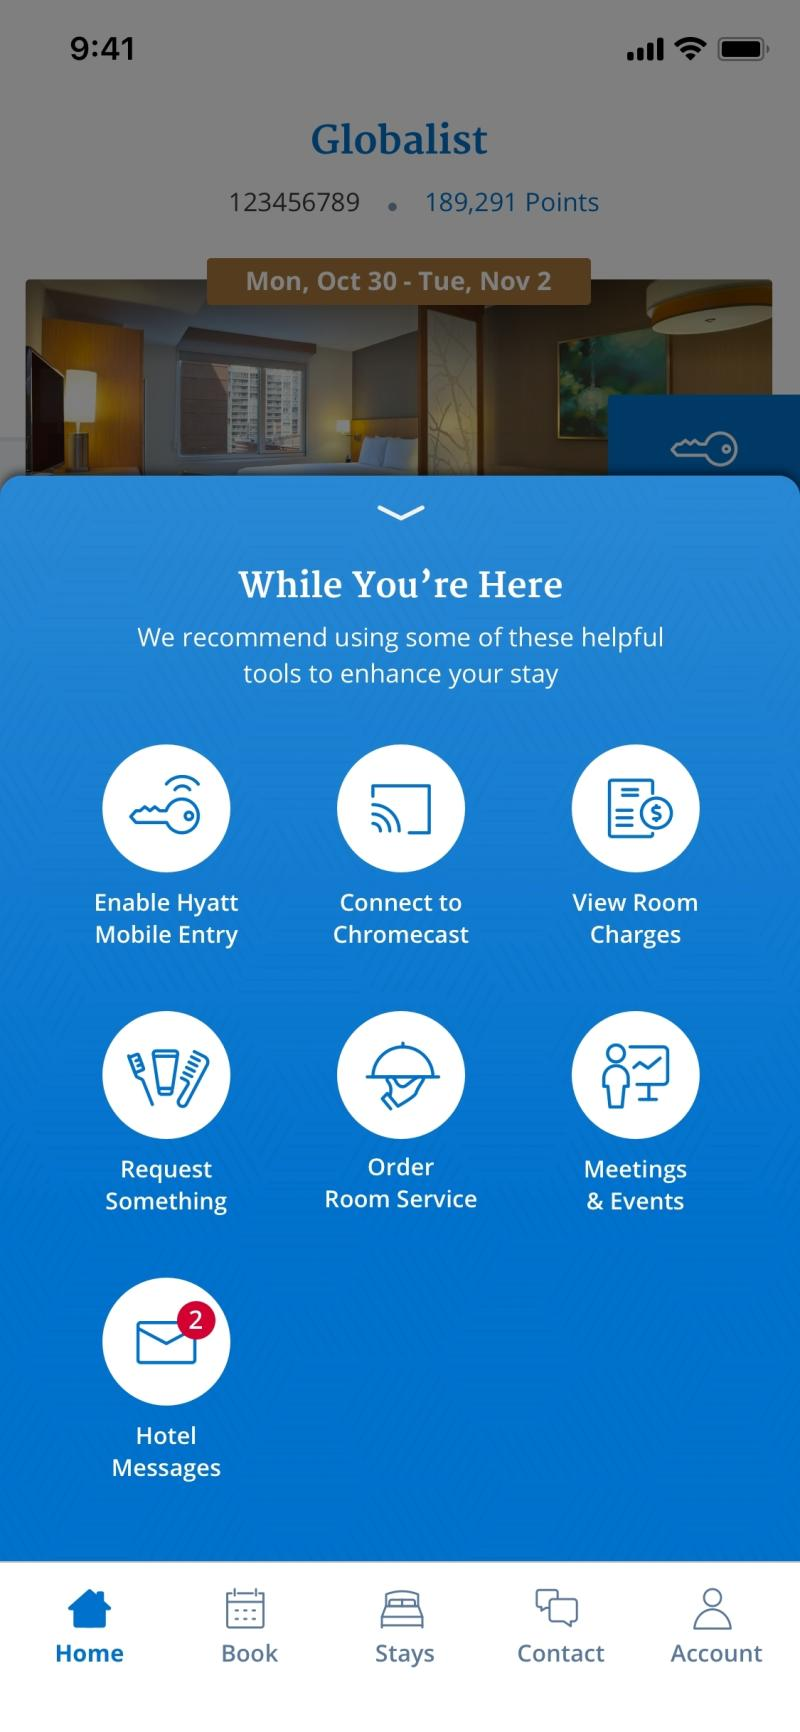 New World of Hyatt Mobile App Provides Loyalty Members With a More Personalized and Seamless Travel Experience